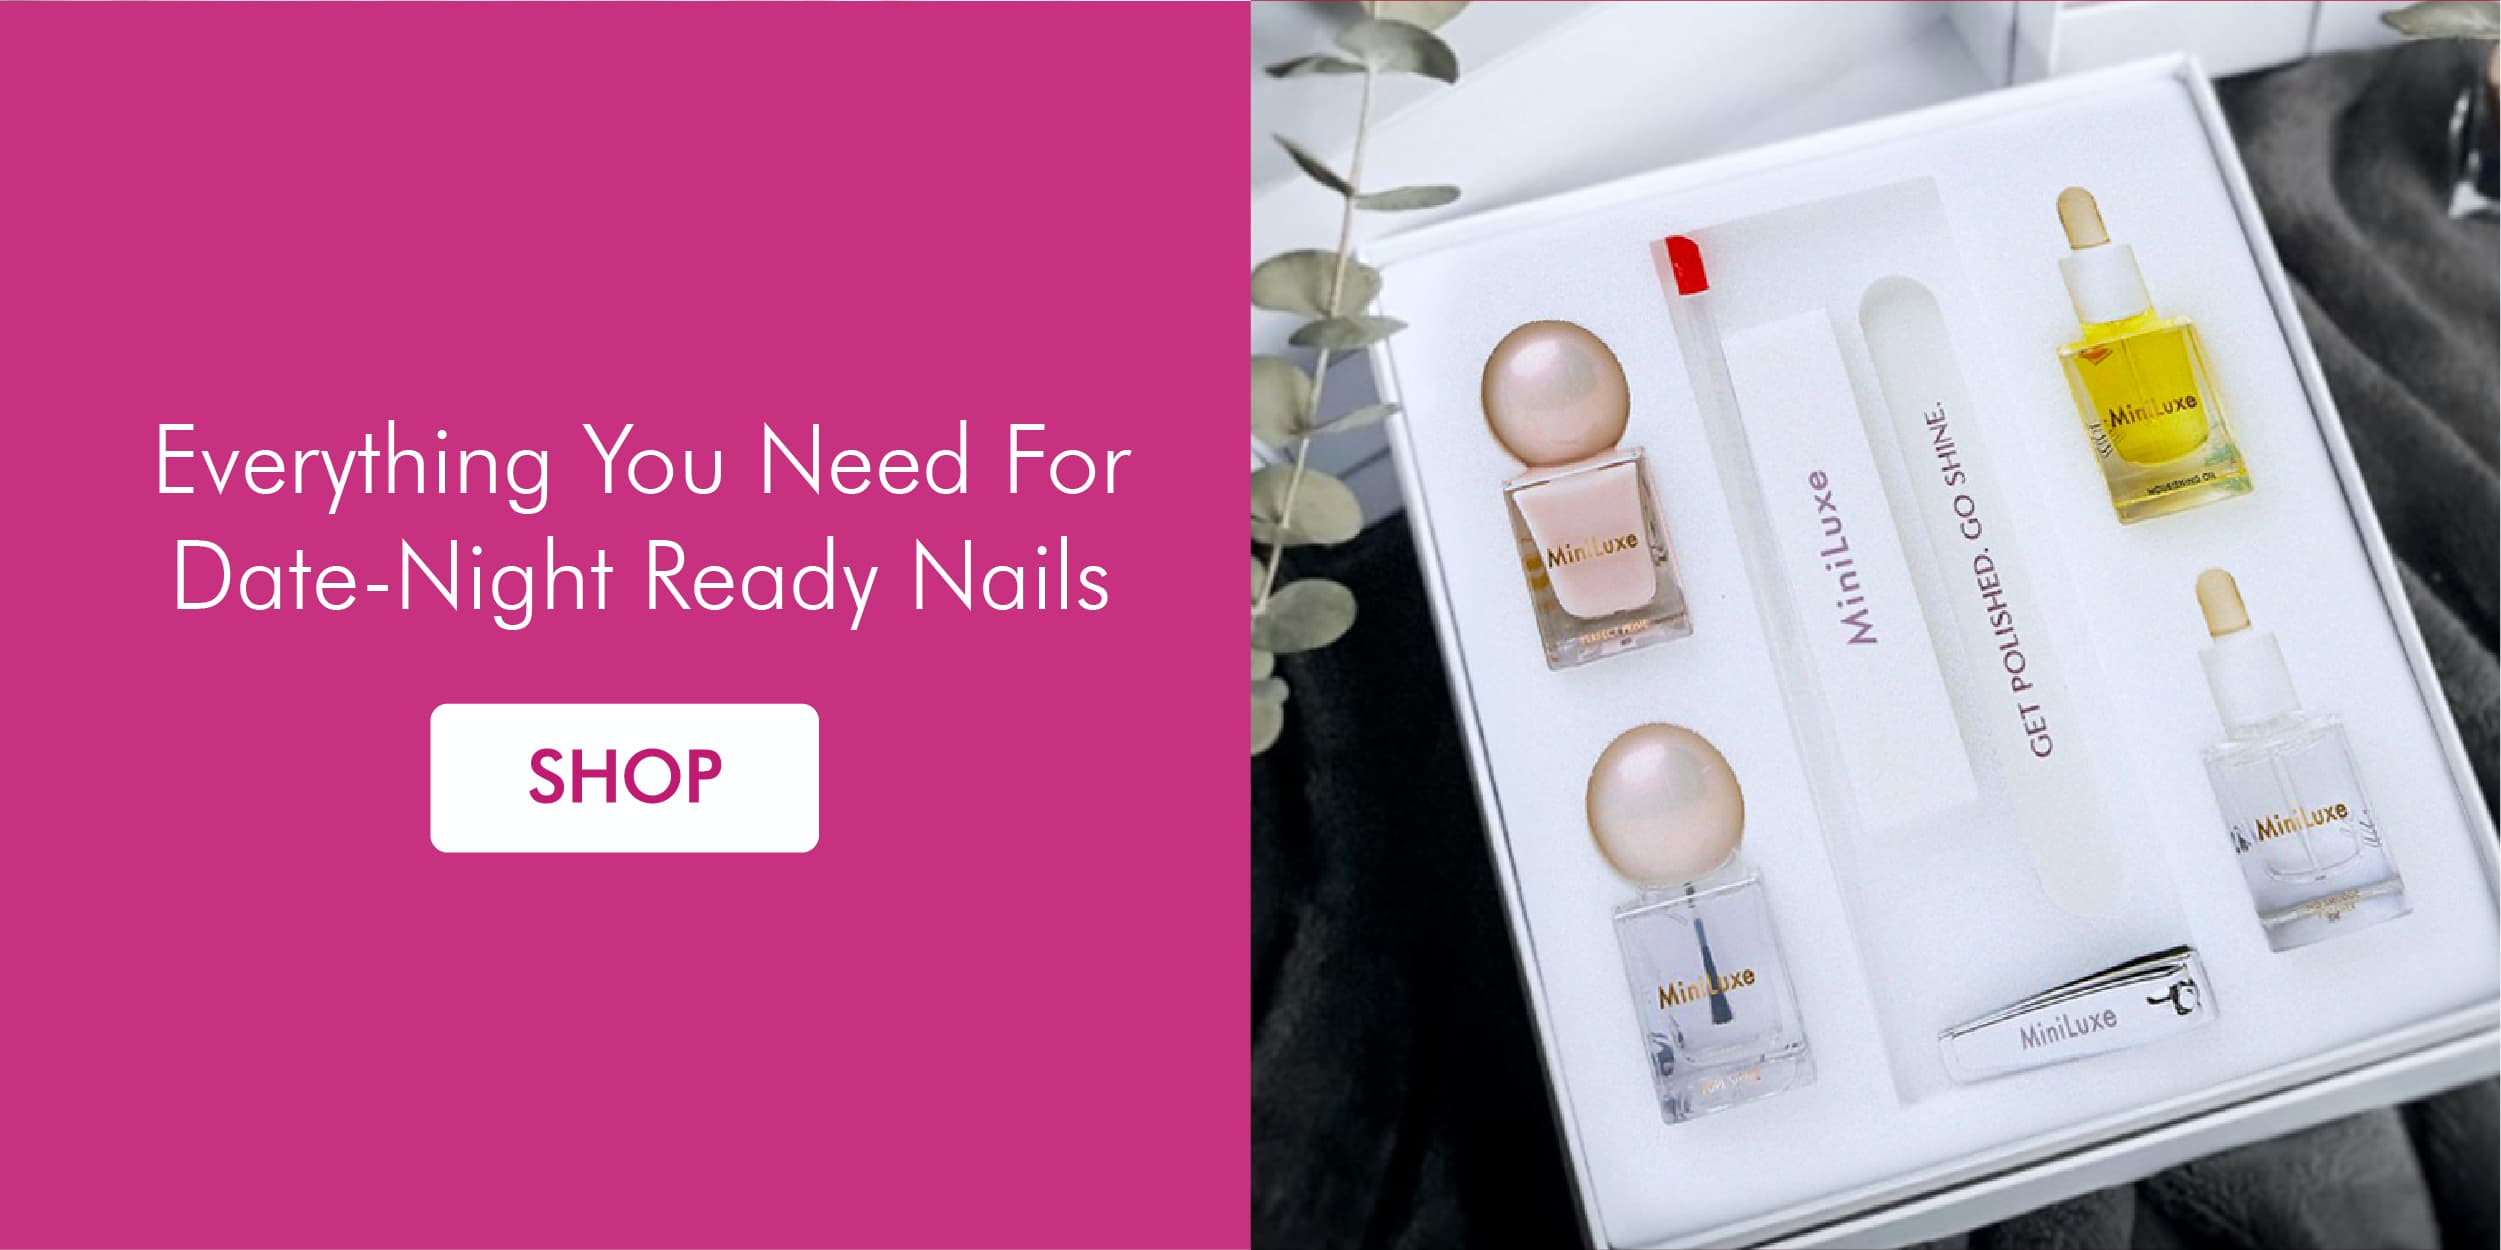 Everything You Need For Date-Night Ready Nails